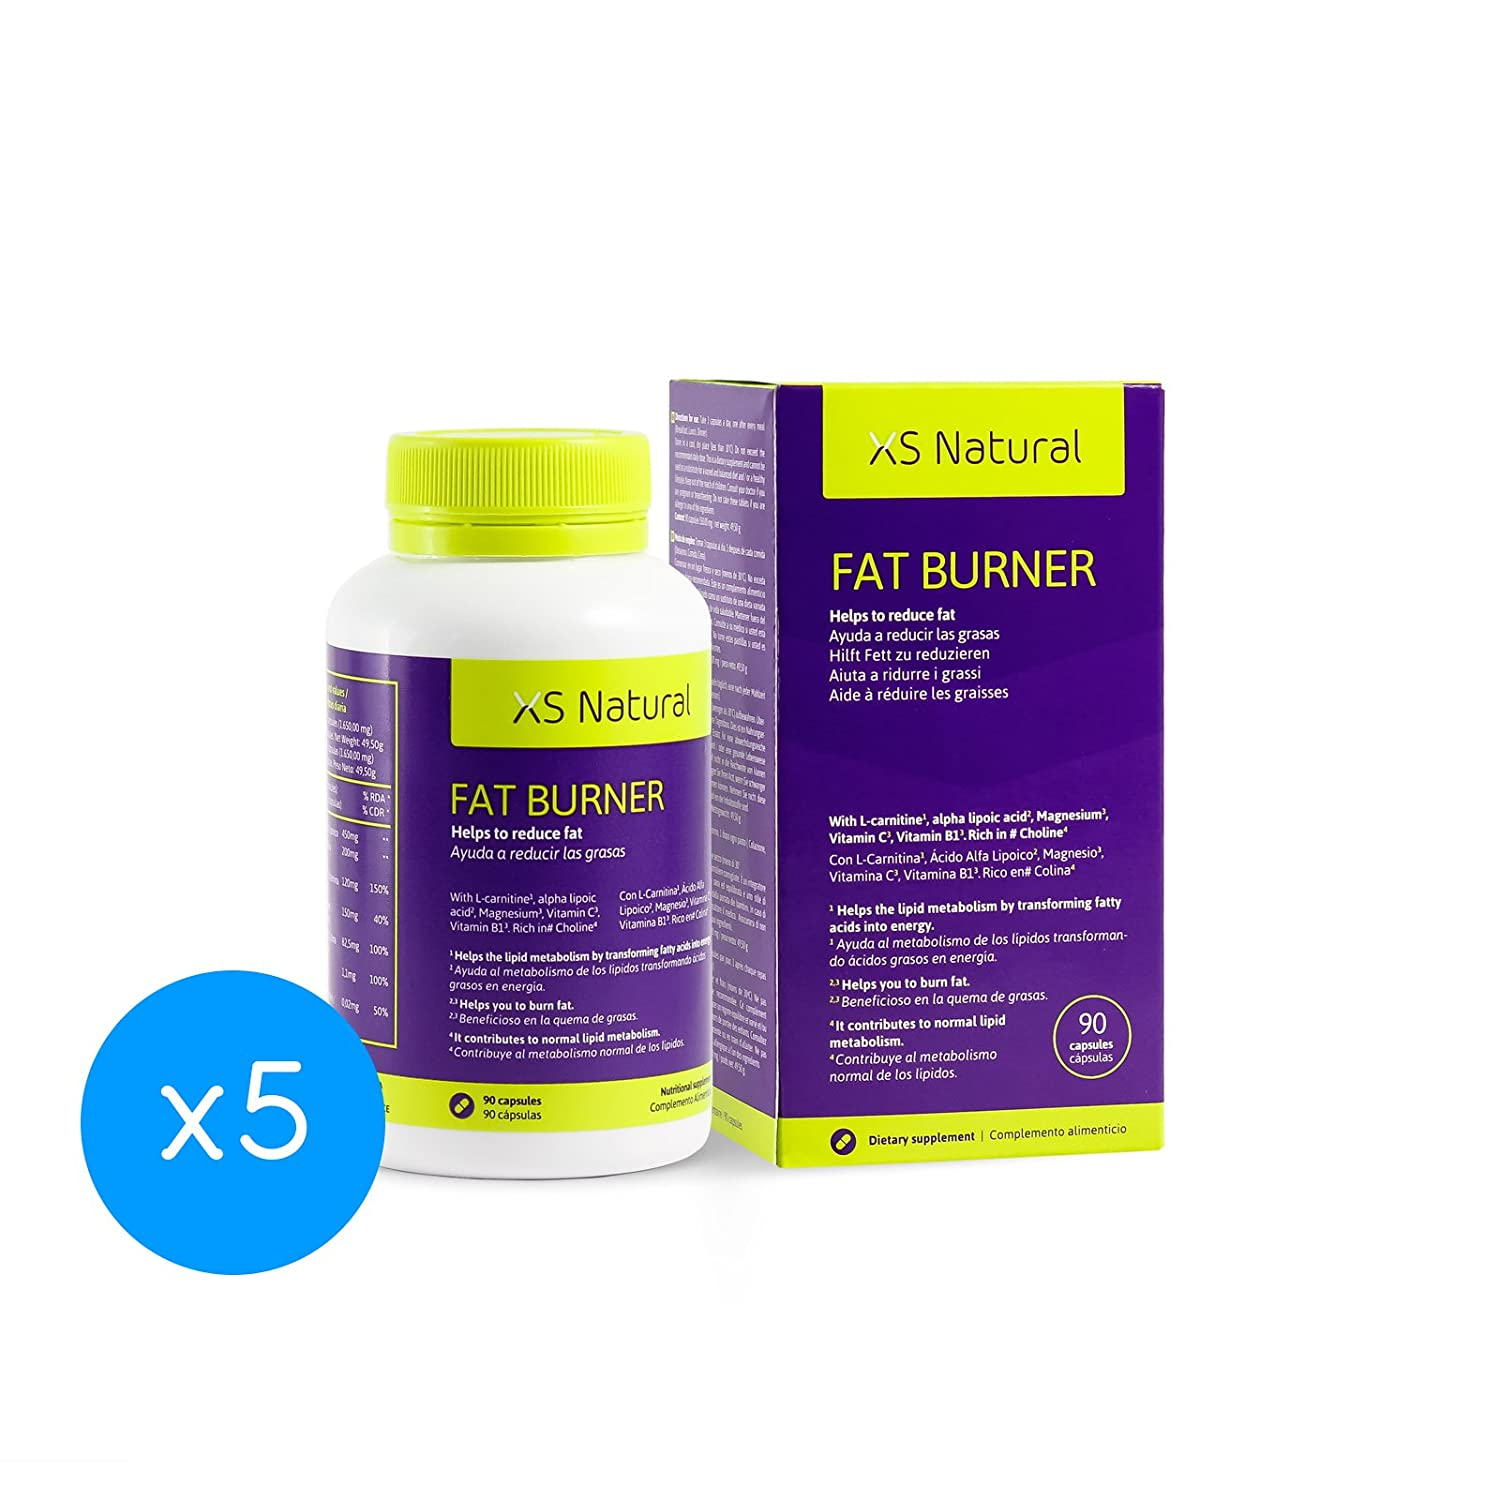 Fat burner help you lose weight